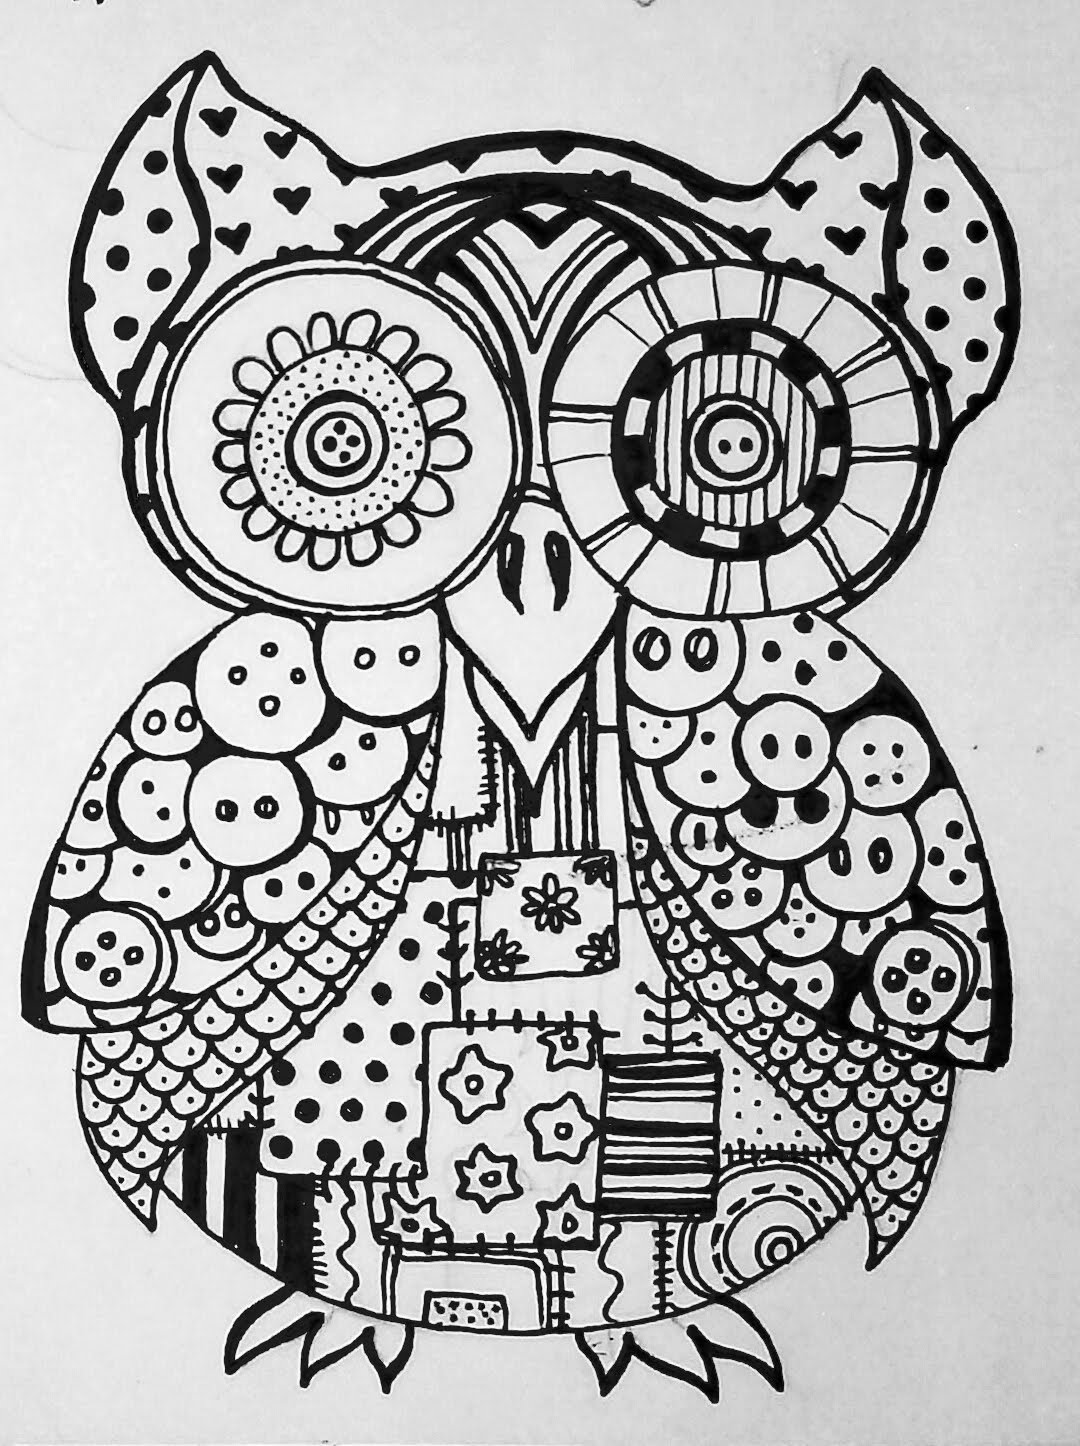 10 Pics Of Extreme Coloring Pages Owls Mosaic Patterns Coloring